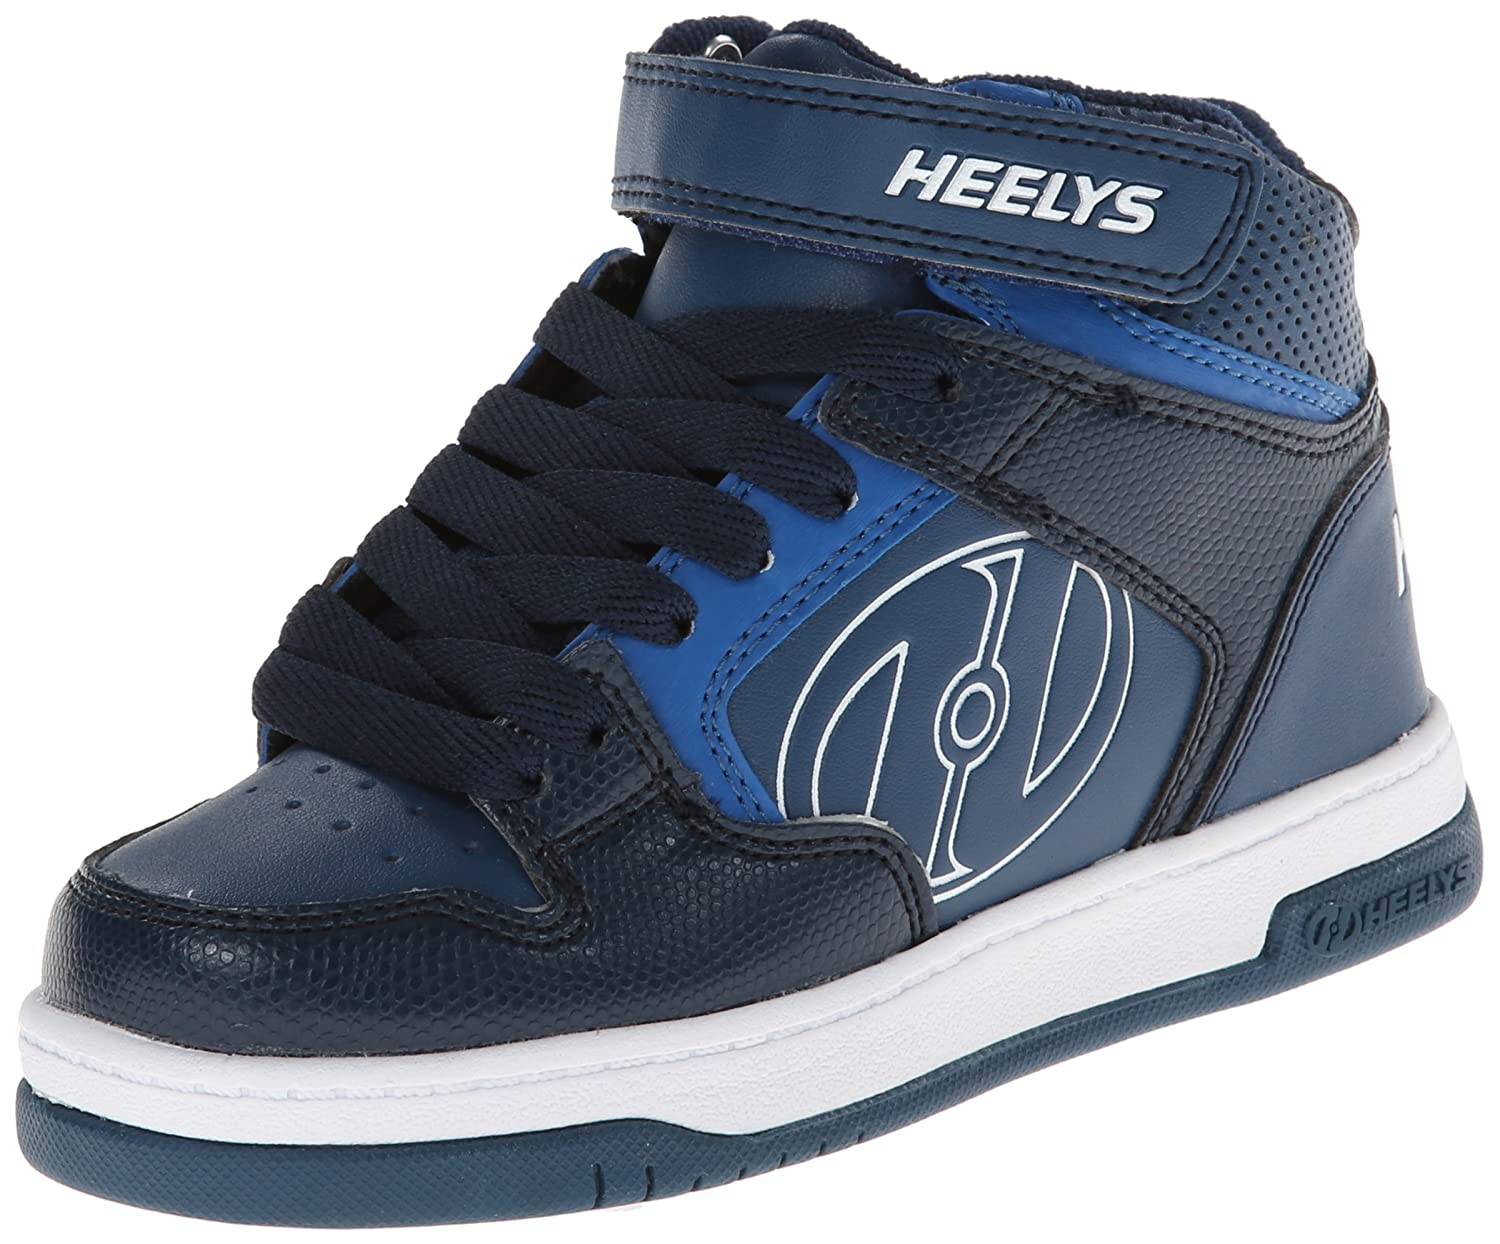 Heelys FLY 2.0 Schuh 2015 navy/new blue/white